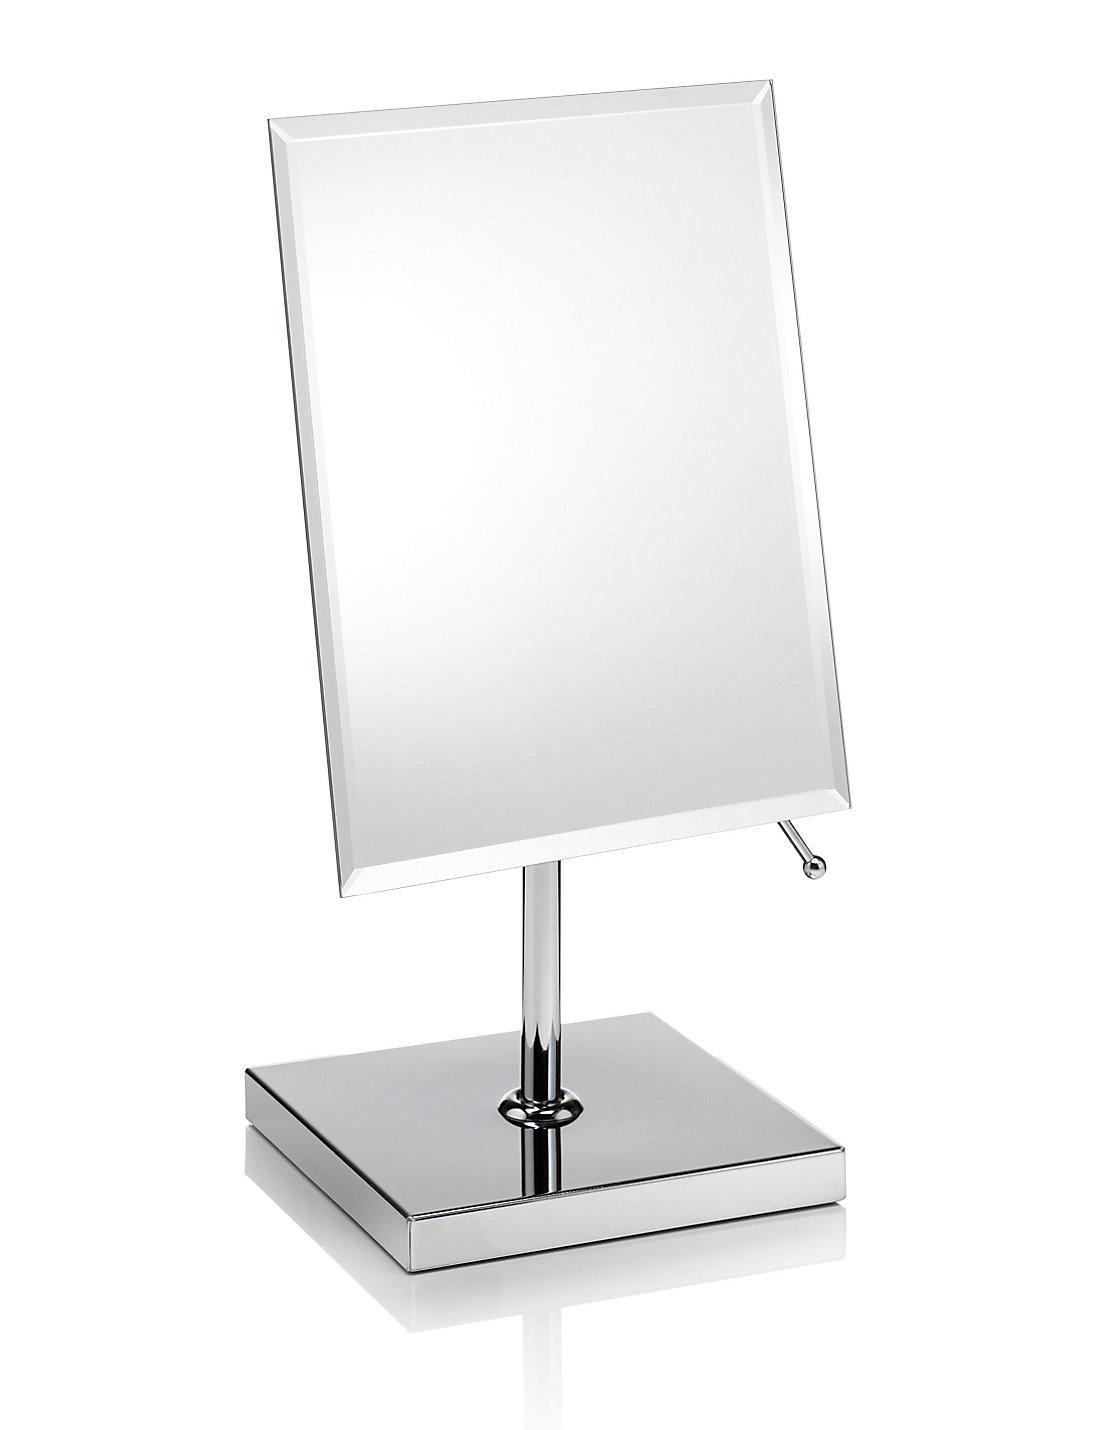 Bathroom Cabinets : White Background Freestanding Bathroom Mirrors Inside Free Standing Bathroom Mirrors (Image 10 of 20)